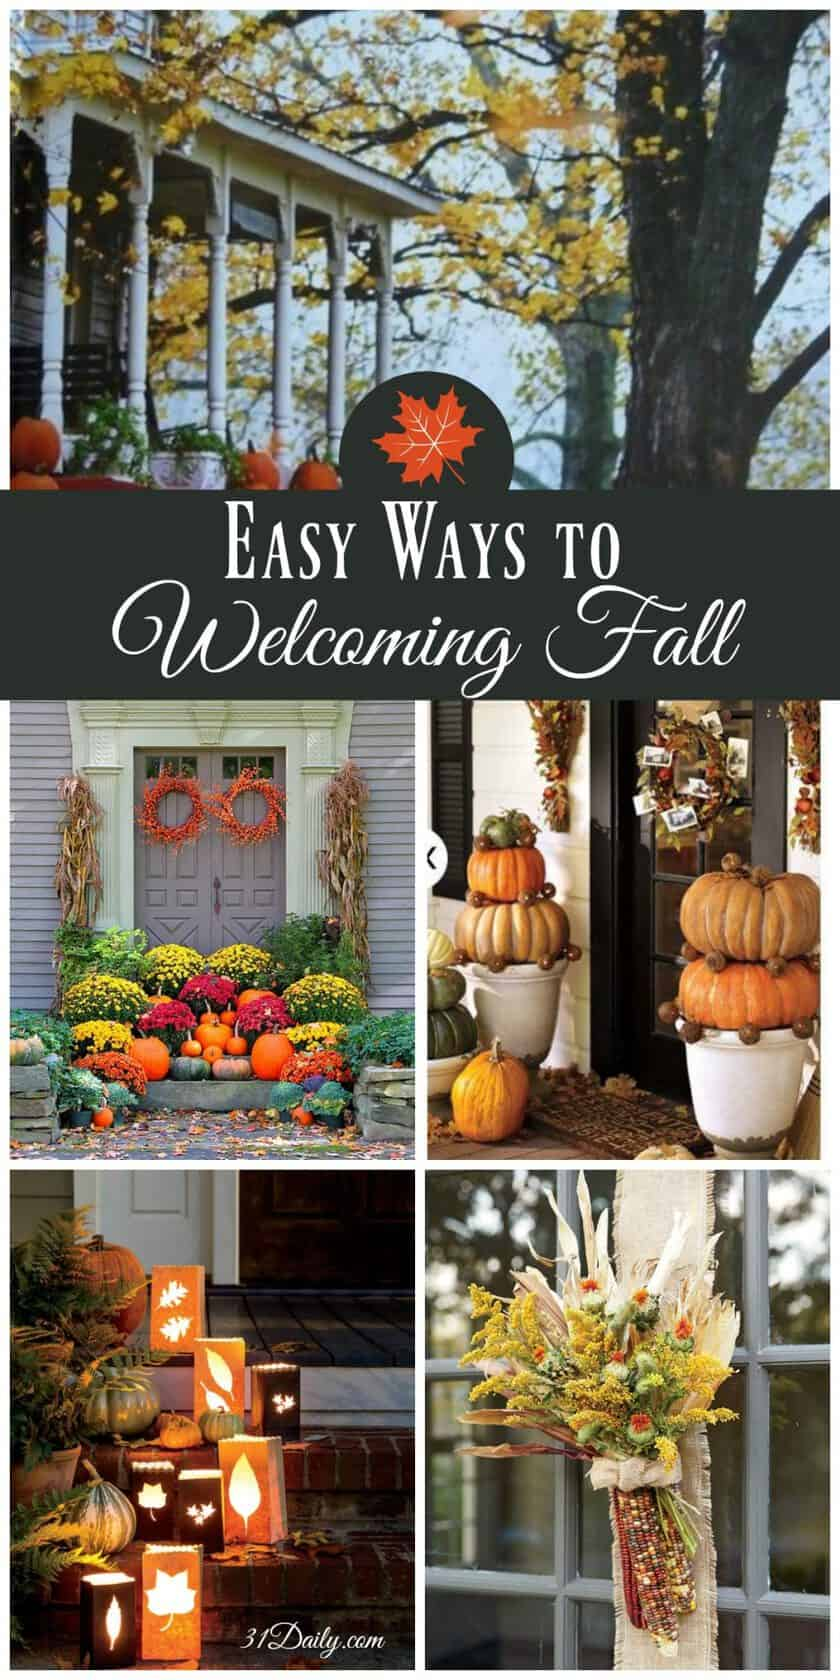 Easy Ways to Welcome Fall - Front Porch Ideas | 31Daily.com